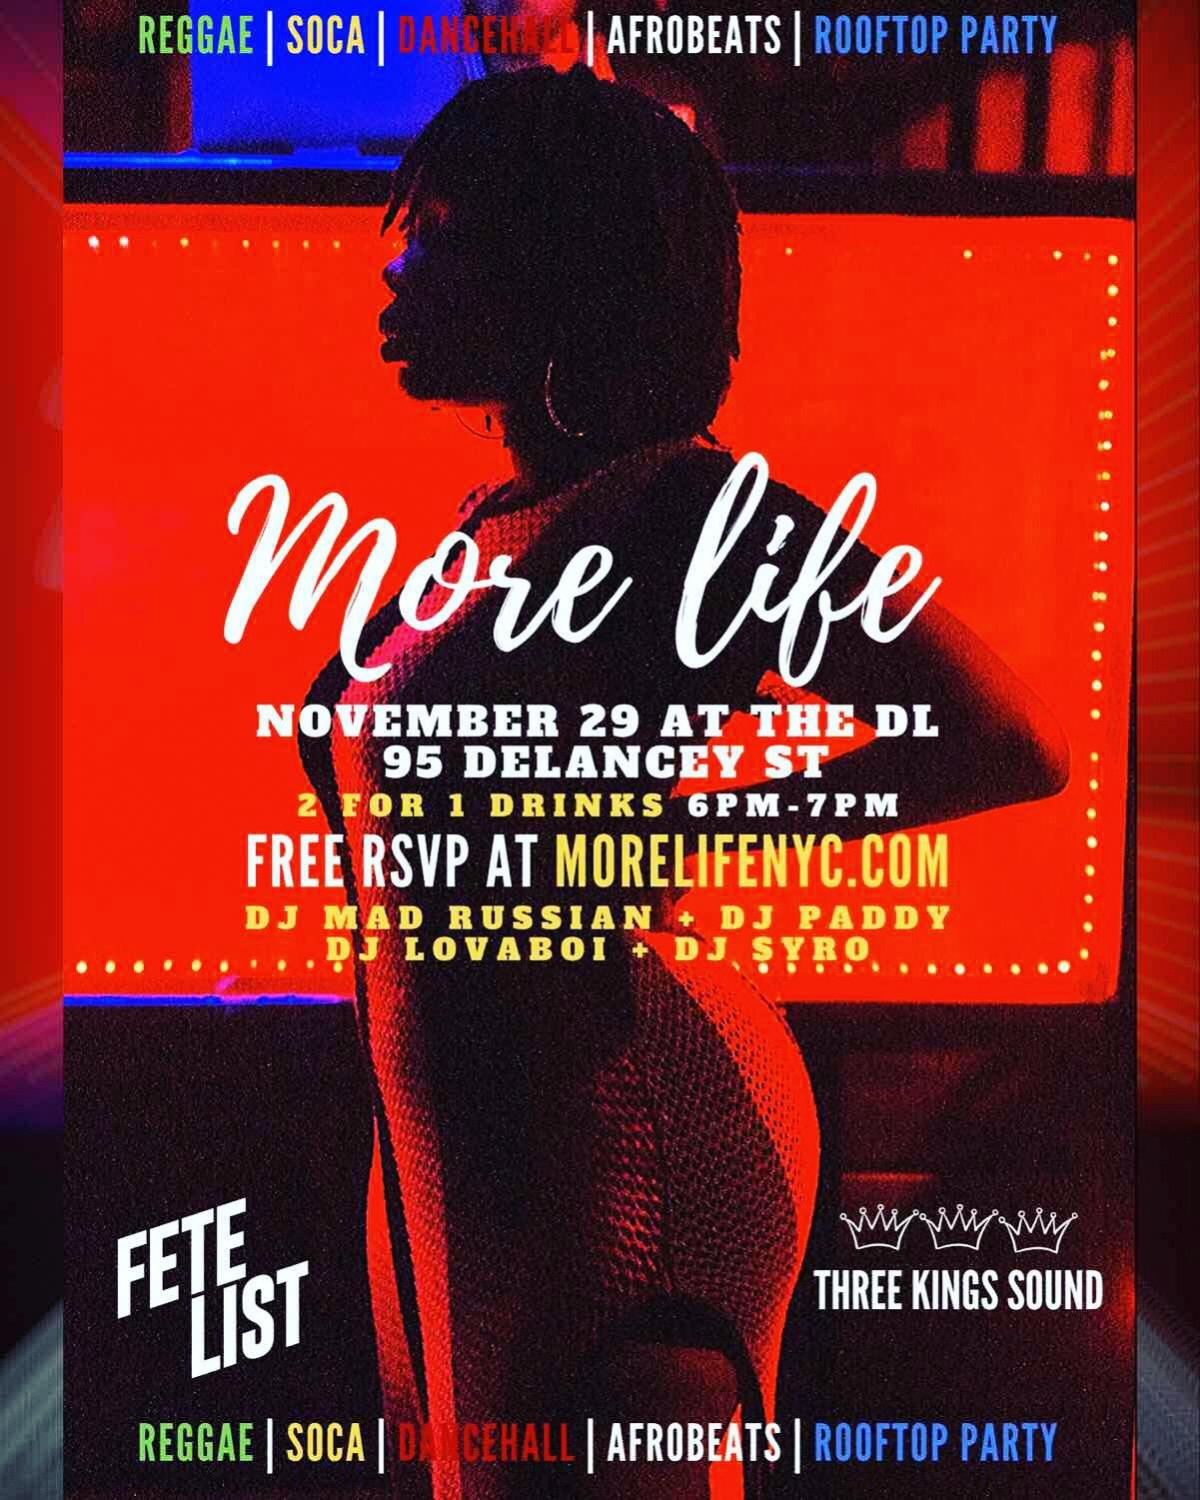 More Life Firebrand Edition flyer or graphic.